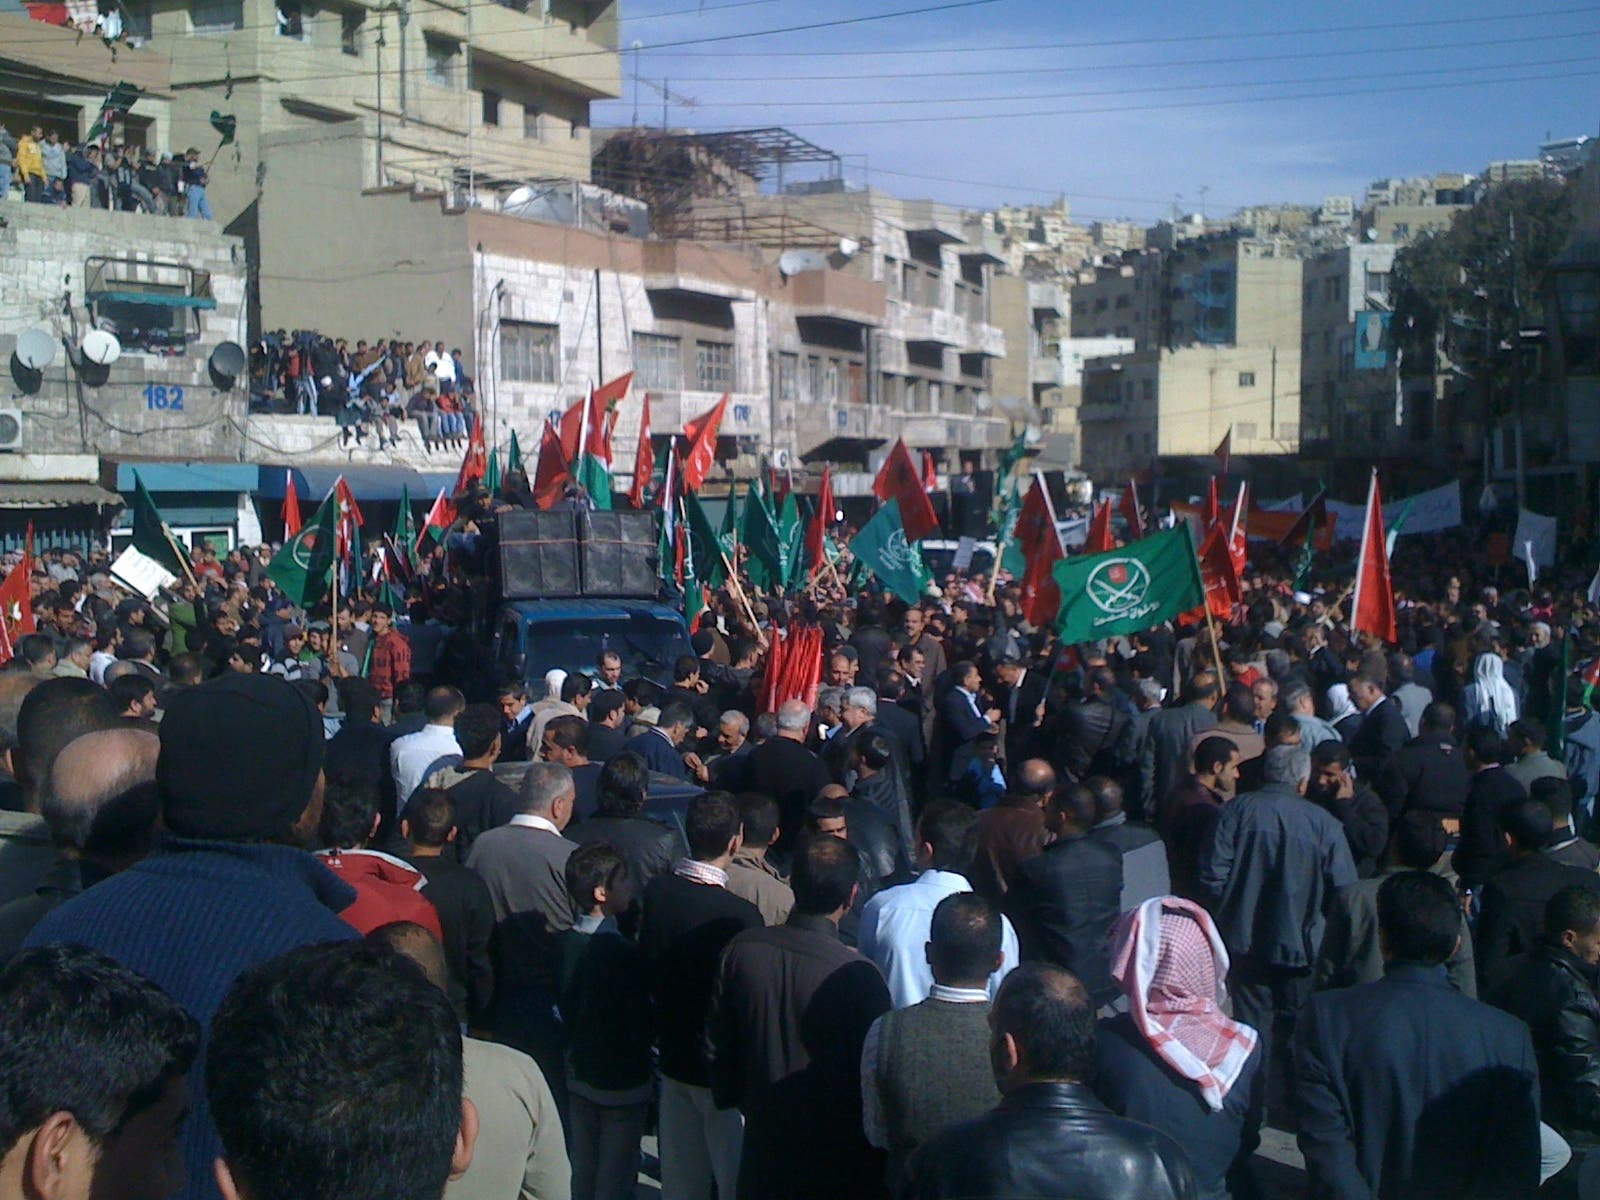 While in Jordan we hear first hand reports of organised and peaceful rallies..